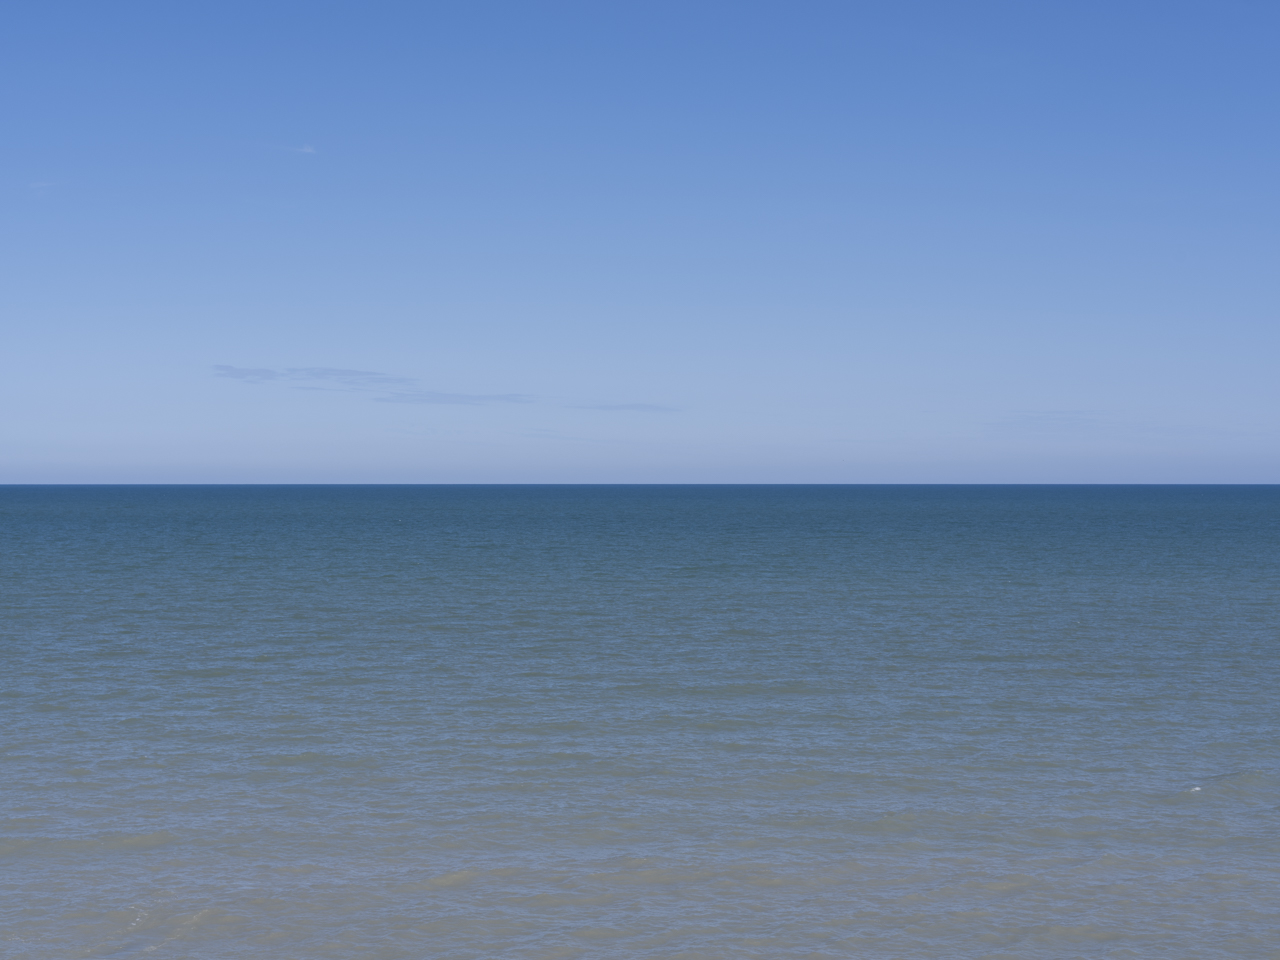 a clear blue day with waters of Lake Michigan in a brown to blue ombre